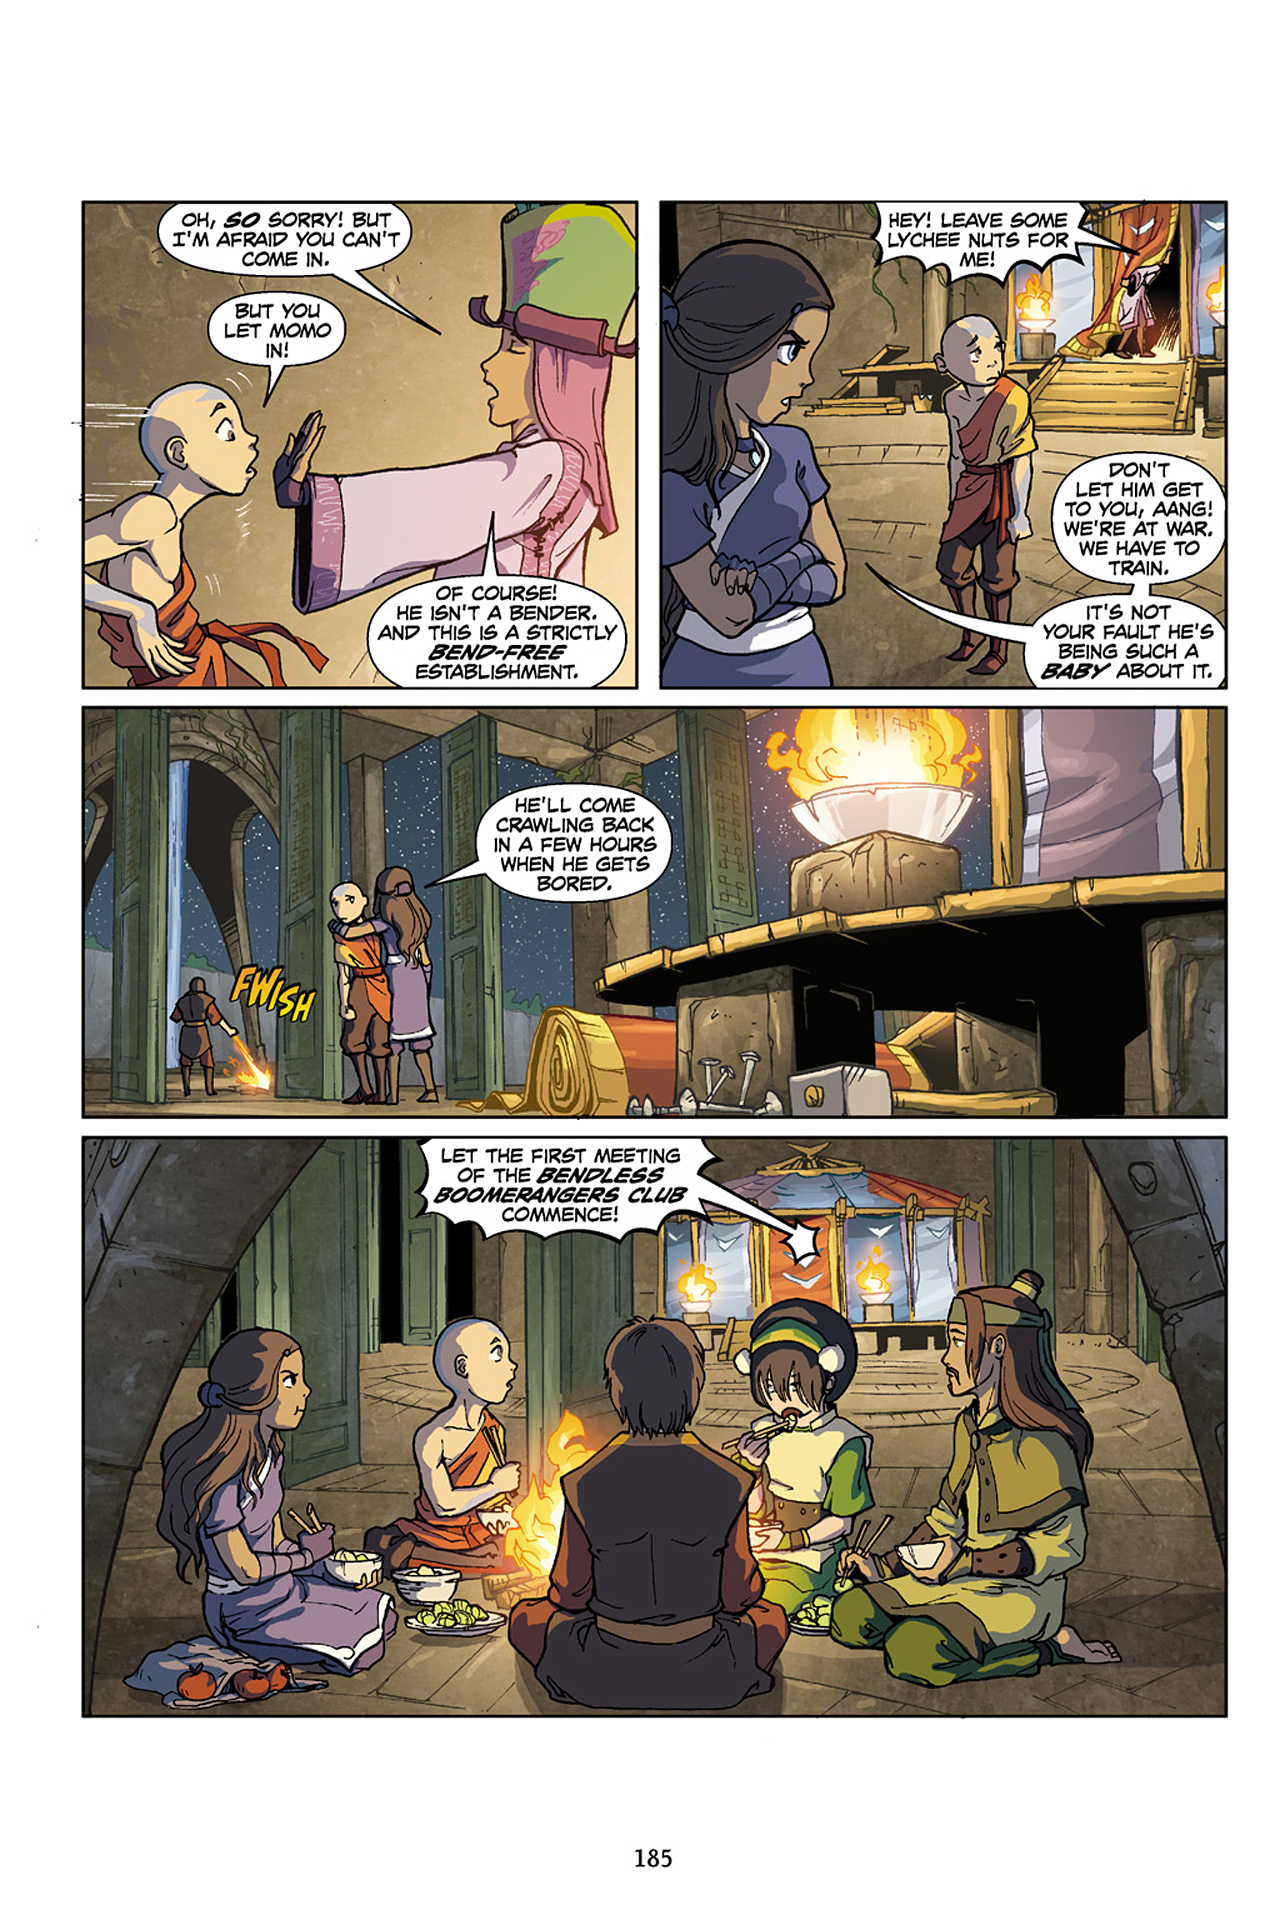 Nickelodeon Avatar: The Last Airbender - The Lost Adventures chap full pic 186